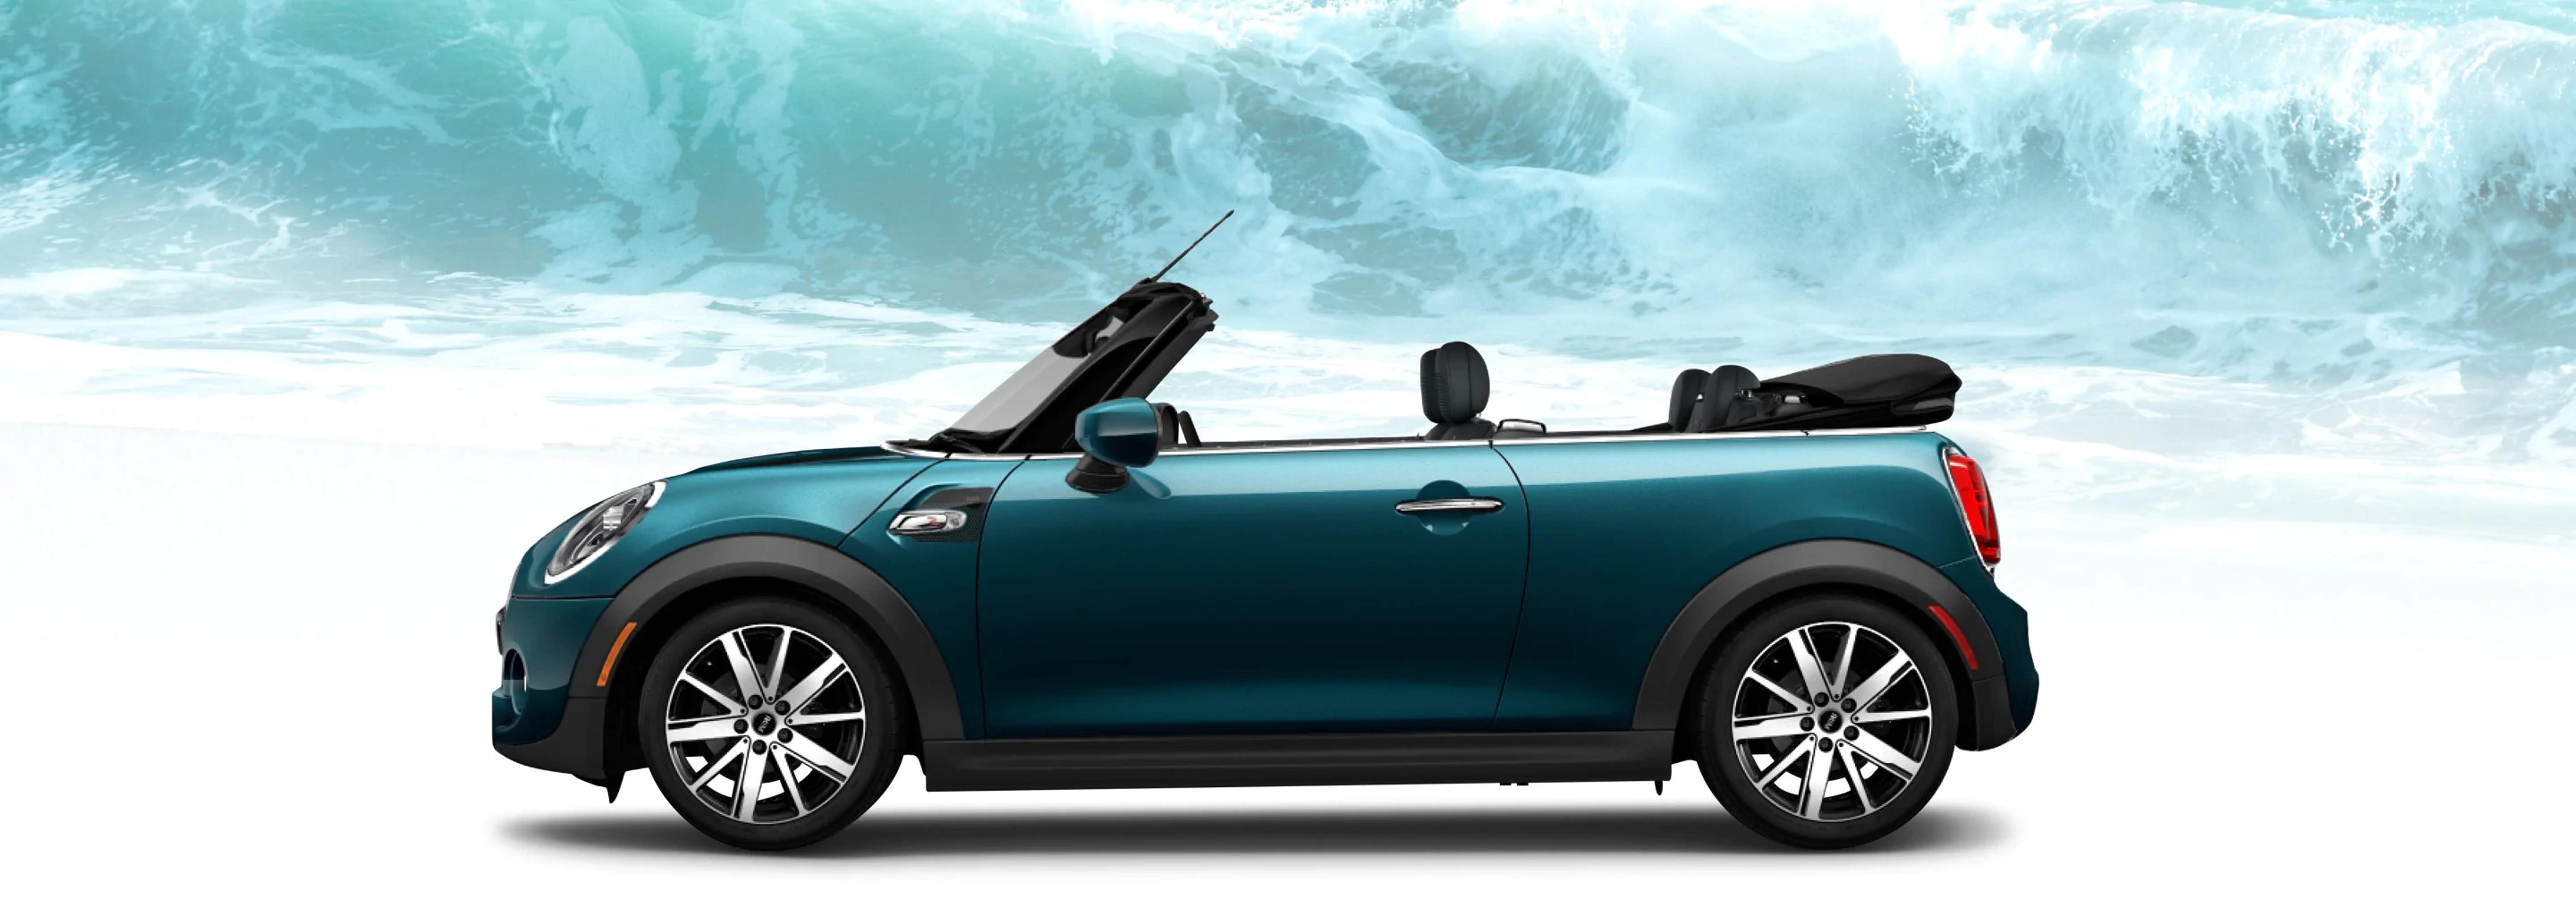 The MINI Cooper S Convertible Sidewalk Edition in front of a large ocean wave.